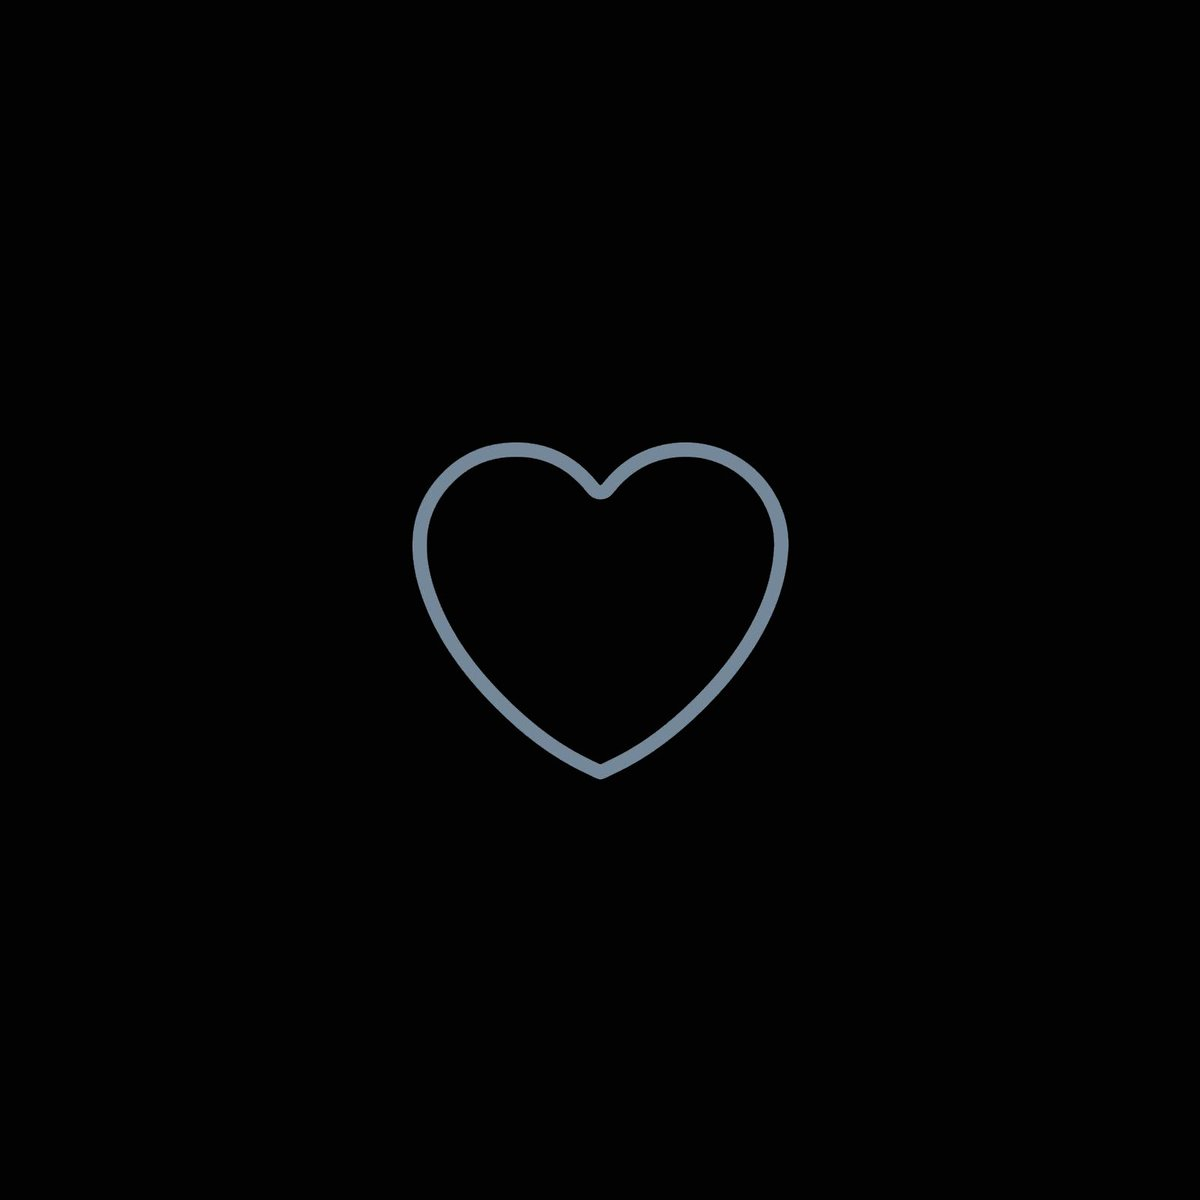 Omg check out the new heart button feature. SO COOL!!!!   #WetLikeImBook https://t.co/kc17ImQjf0